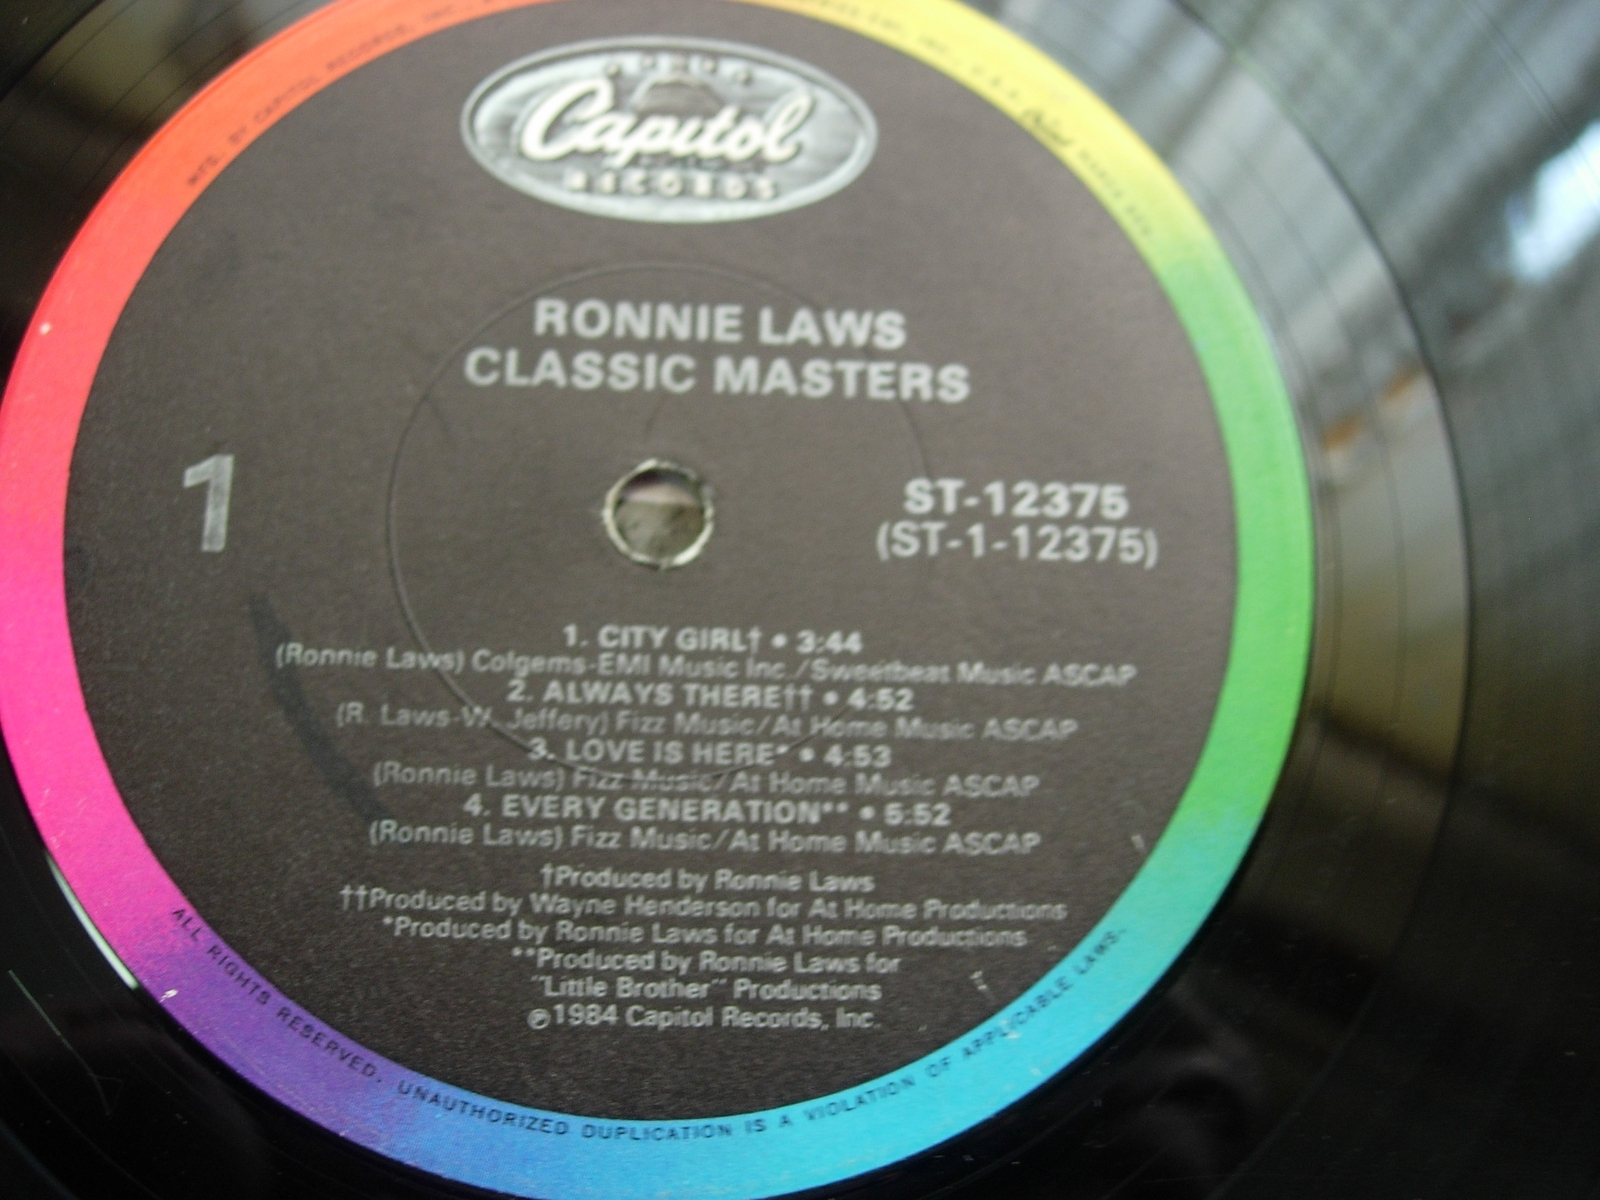 Ronnie Law - Classic Masters - Capitol Records ST-12375